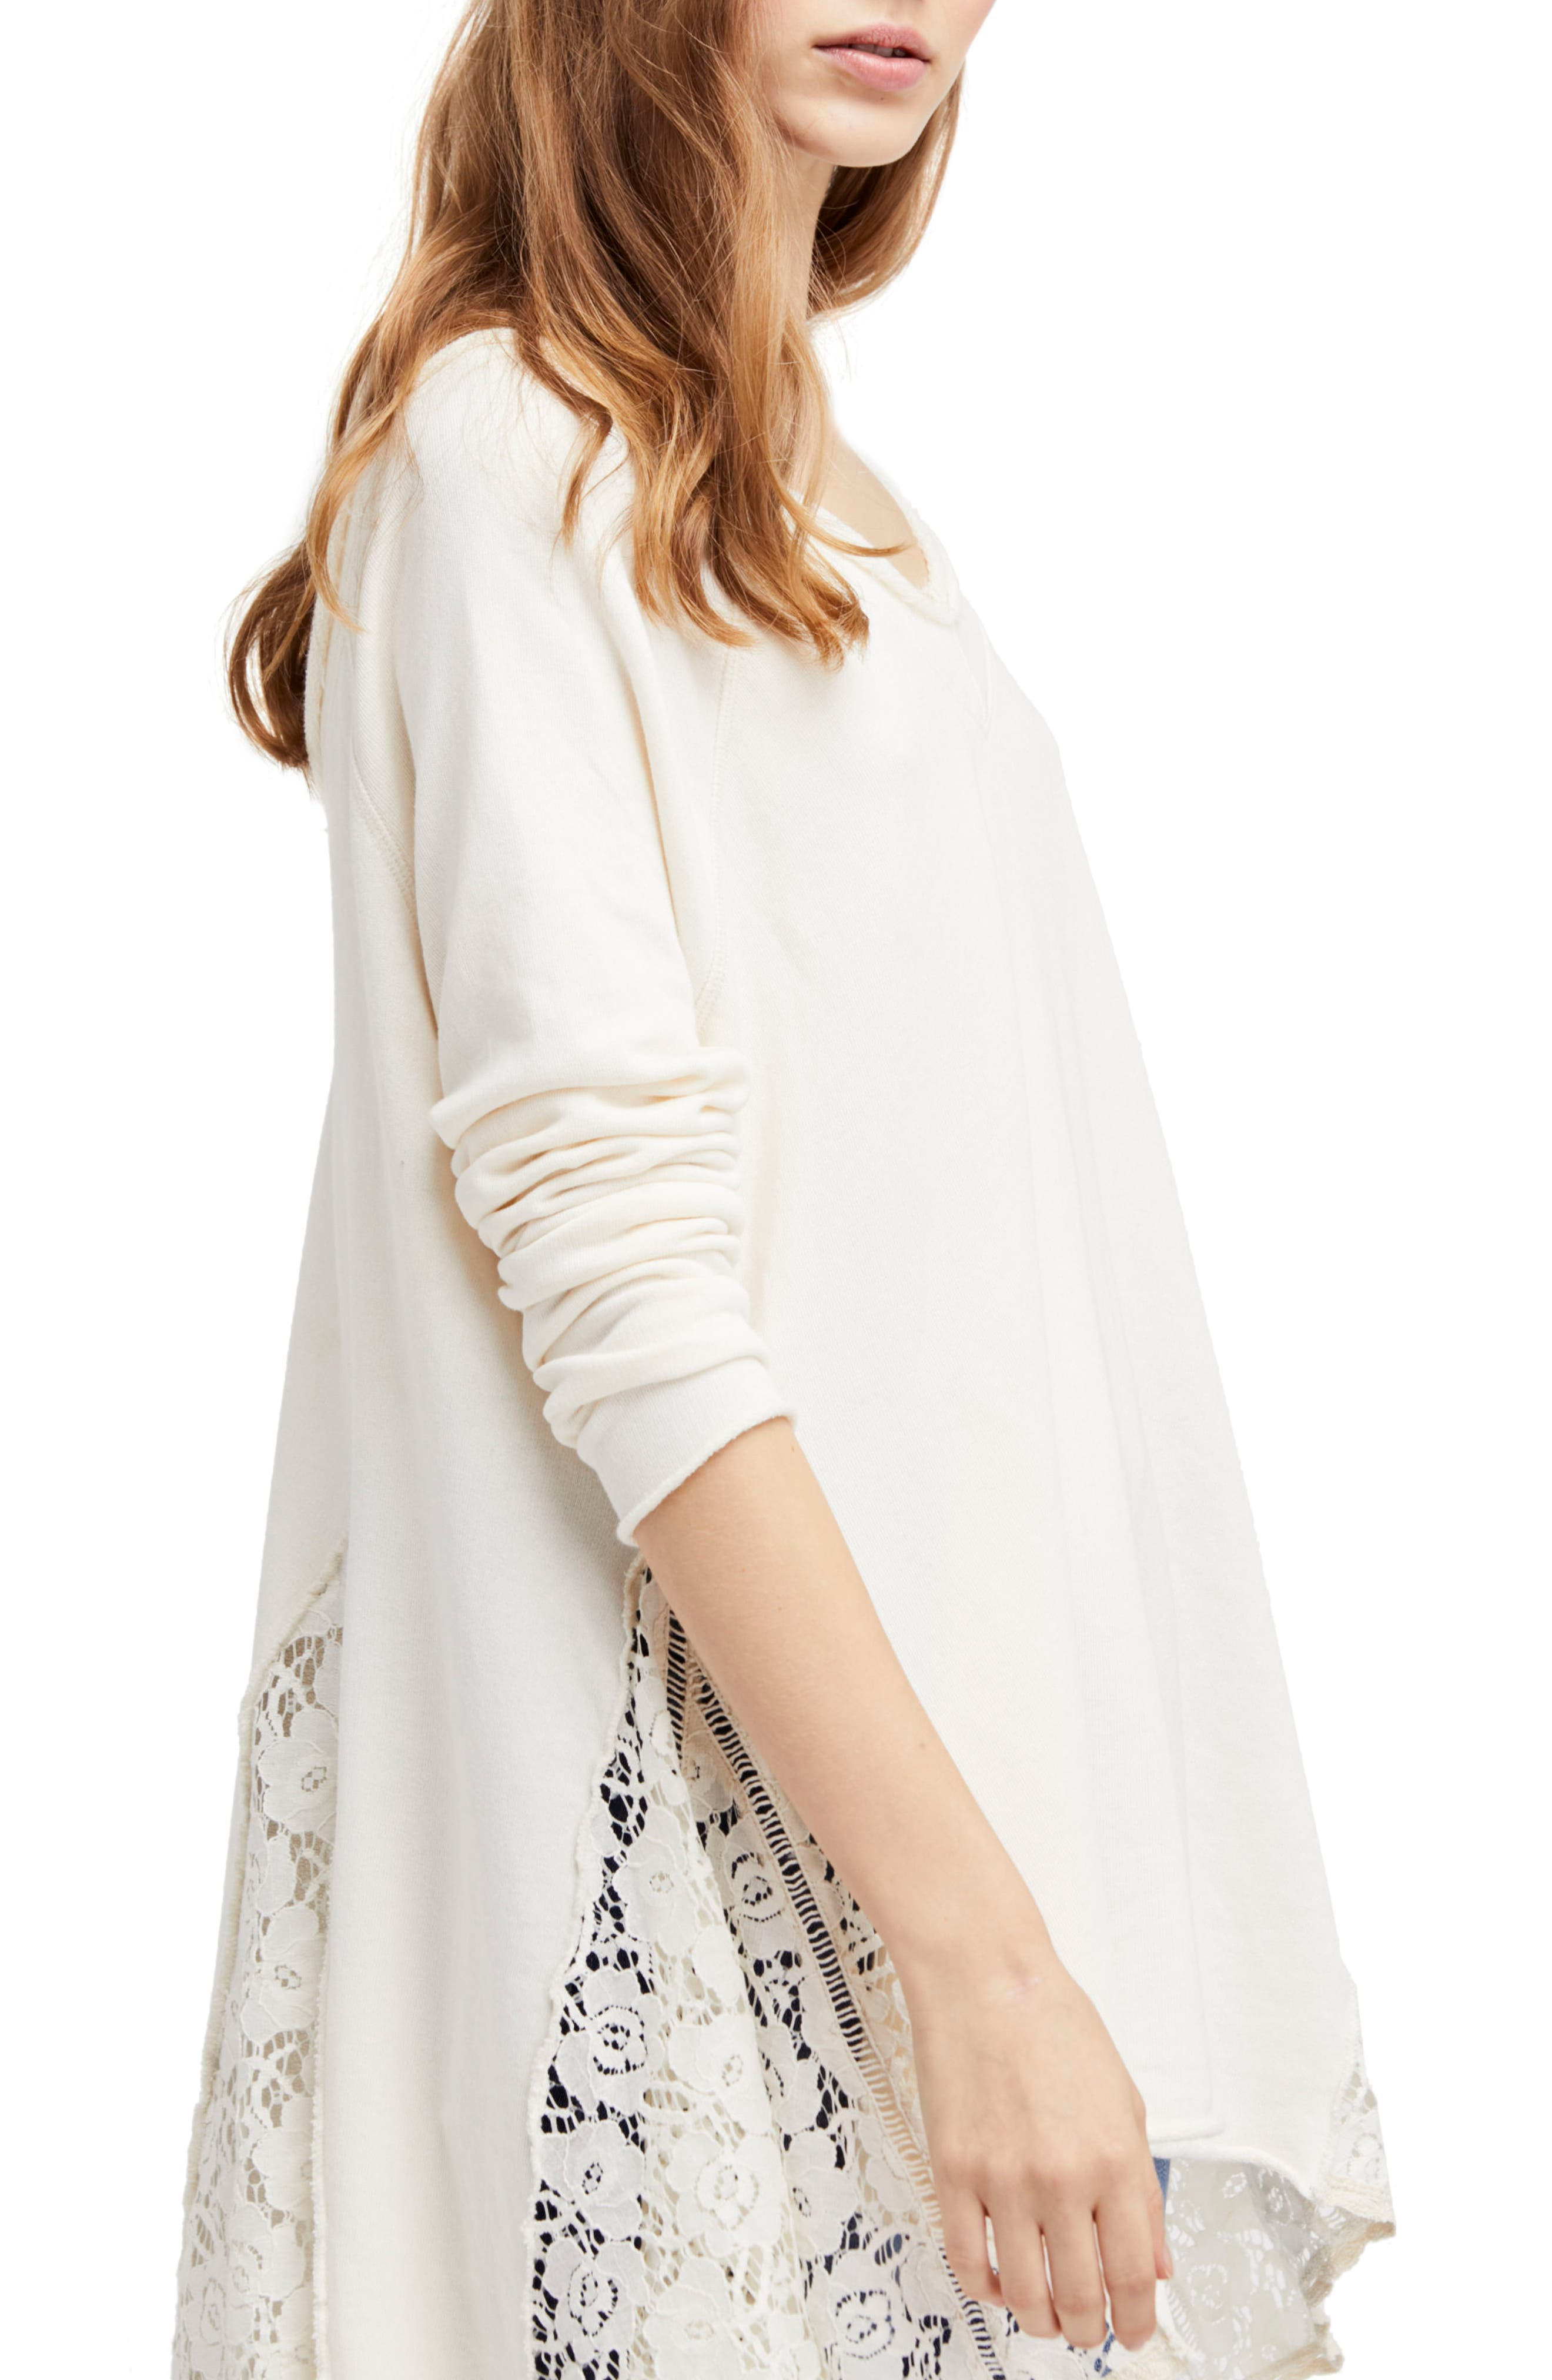 Free People No Frills Lace Inset Asymmetrical Top